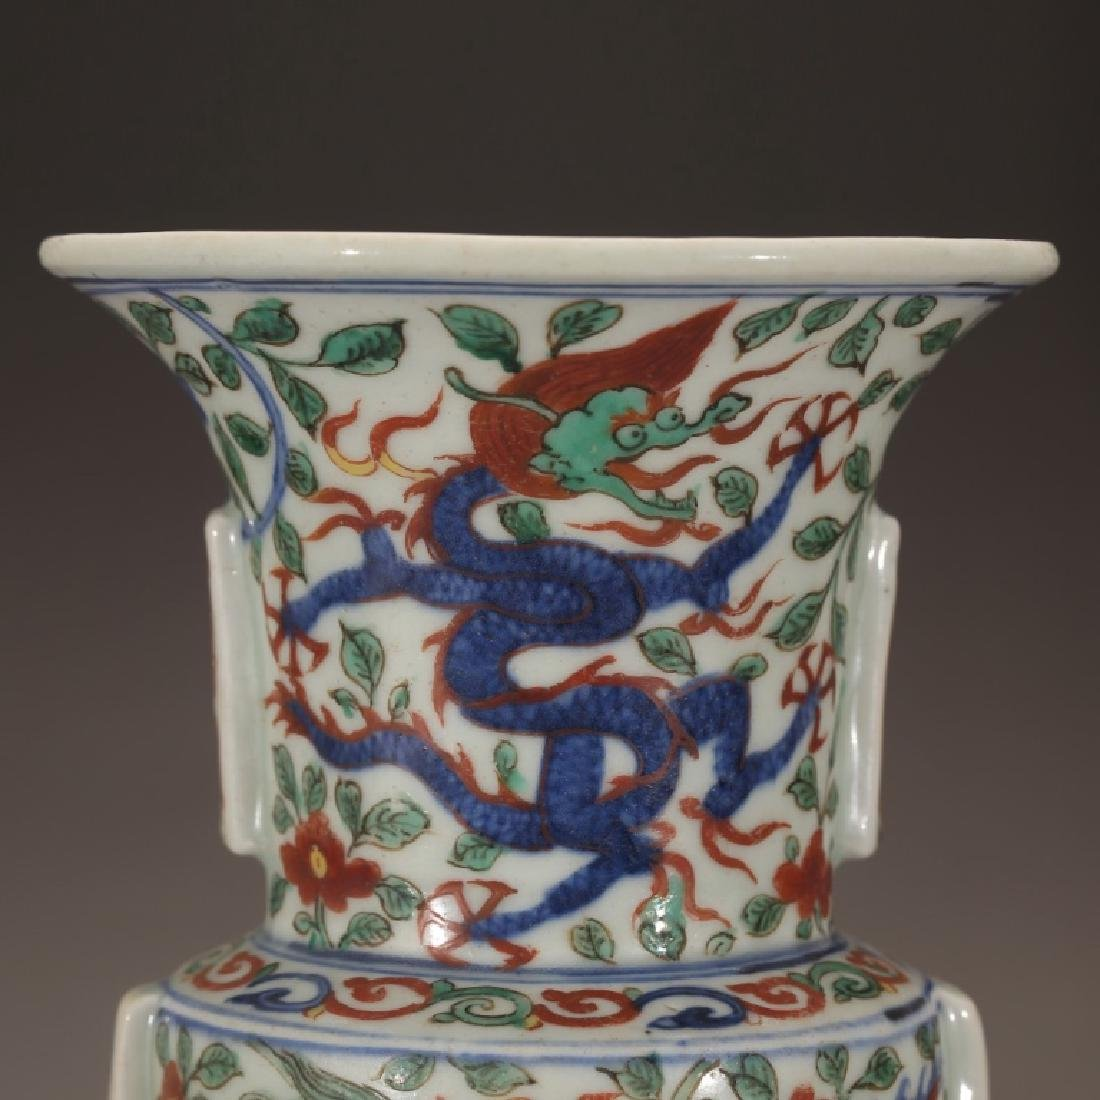 Chinese Qing Dynasty Archaic Wucai Porcelain Vase - 5